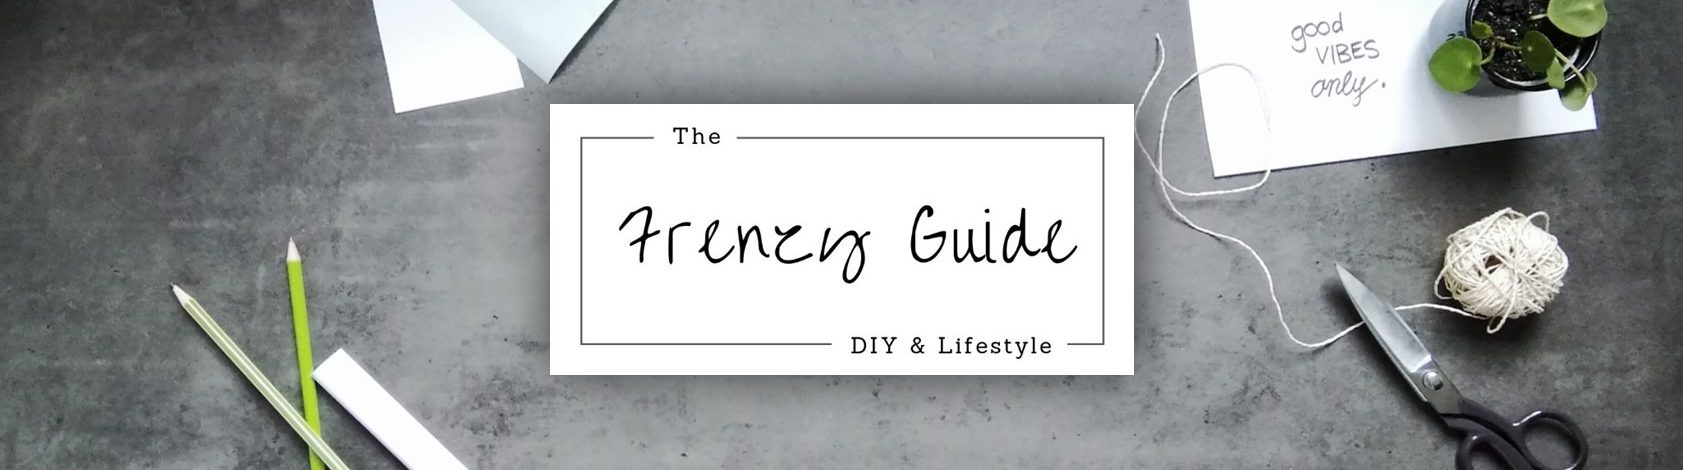 The Frenzy Guide